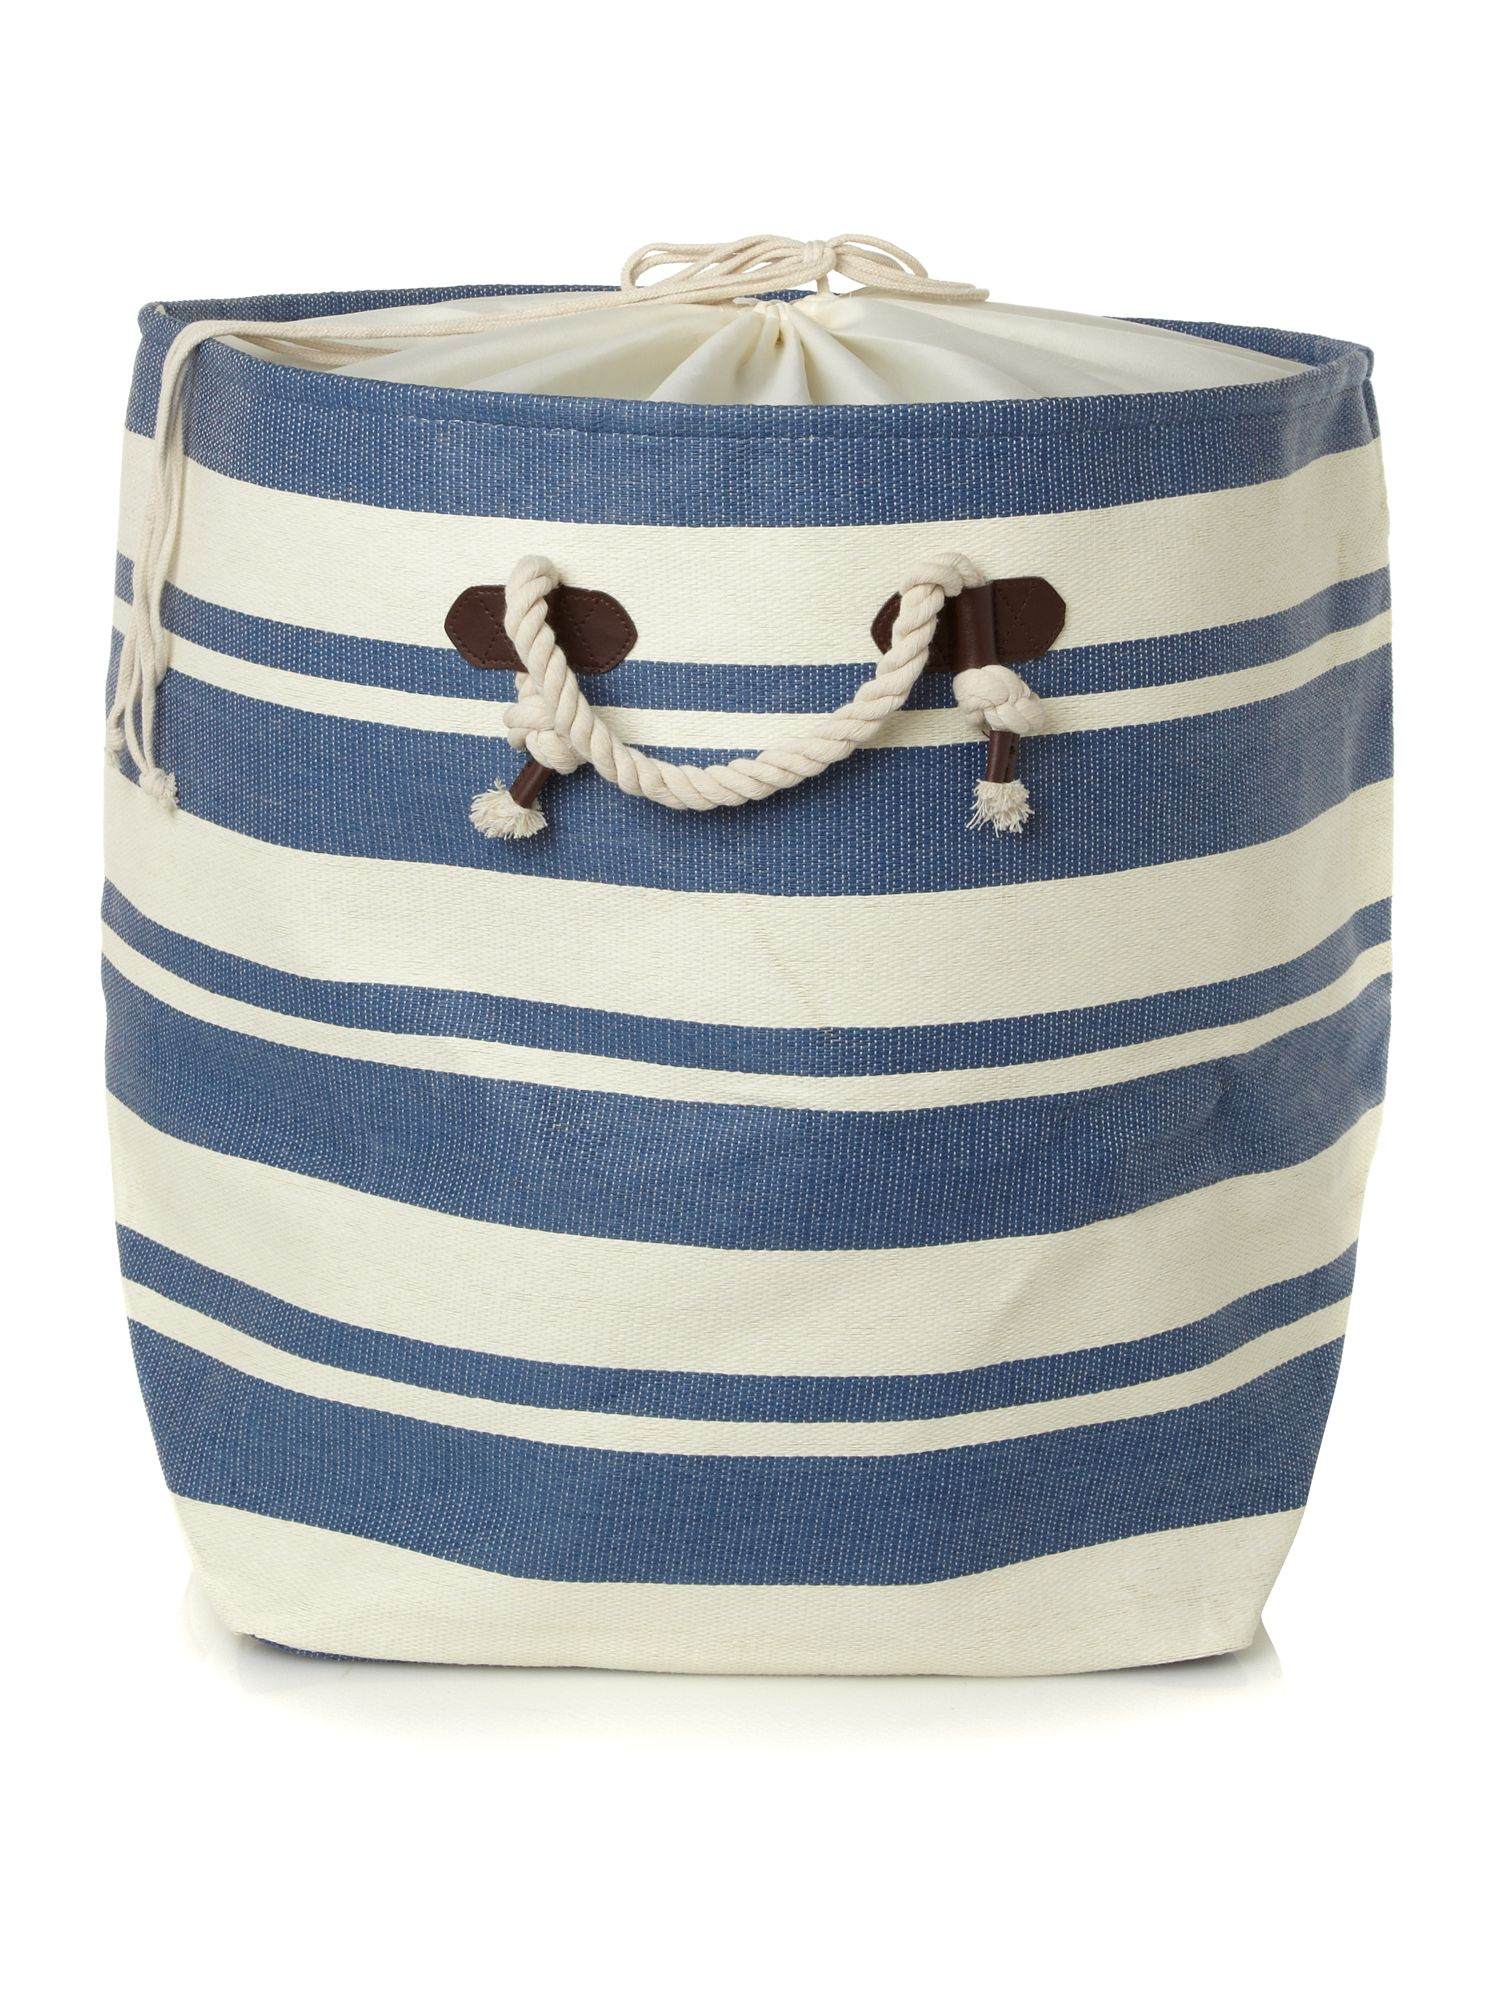 Nautical striped laundry bag in blue